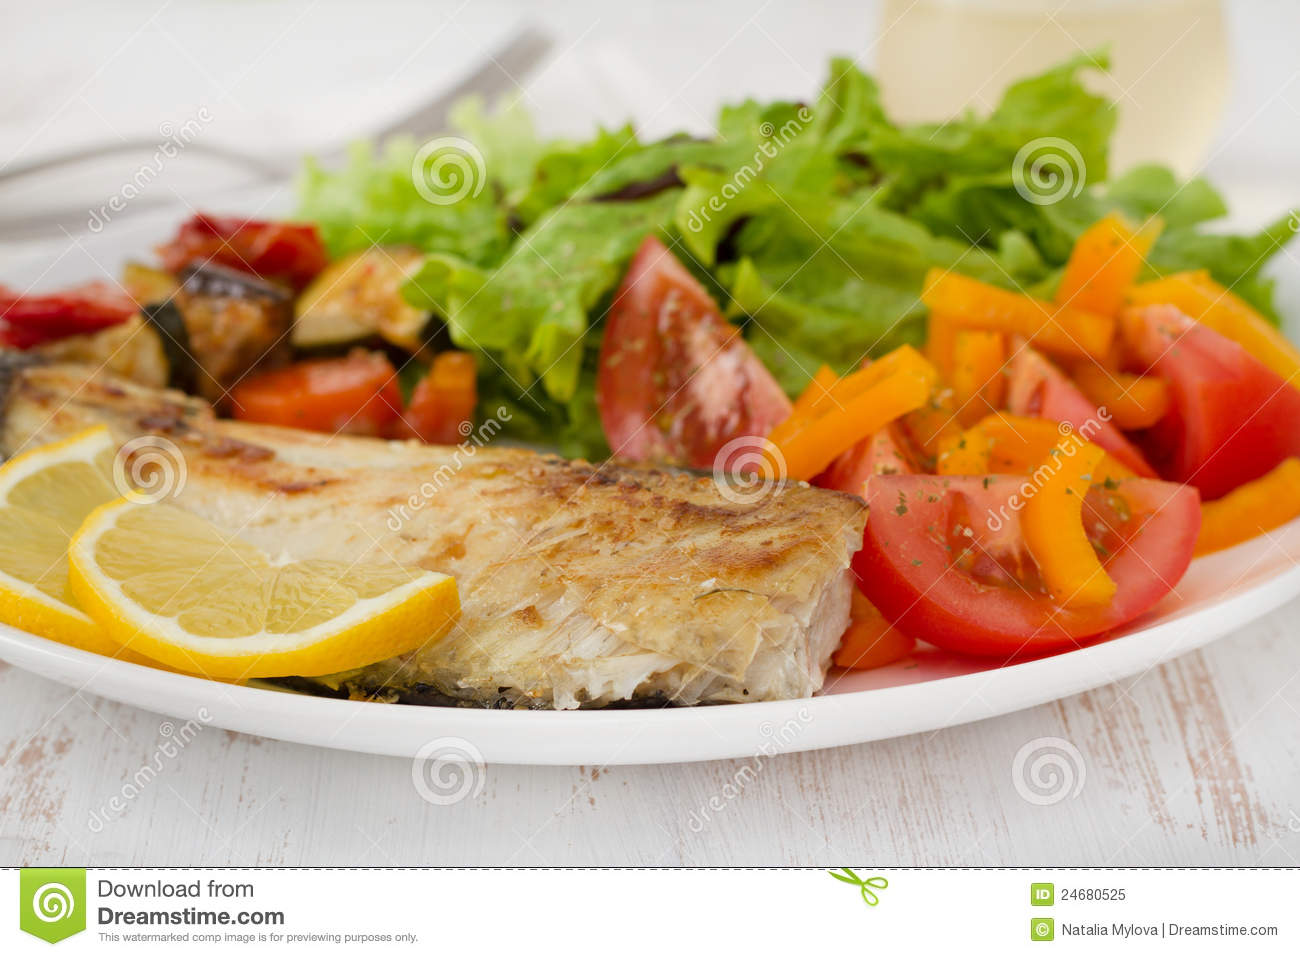 Fried fish with vegetables royalty free stock photo for Fish with vegetables